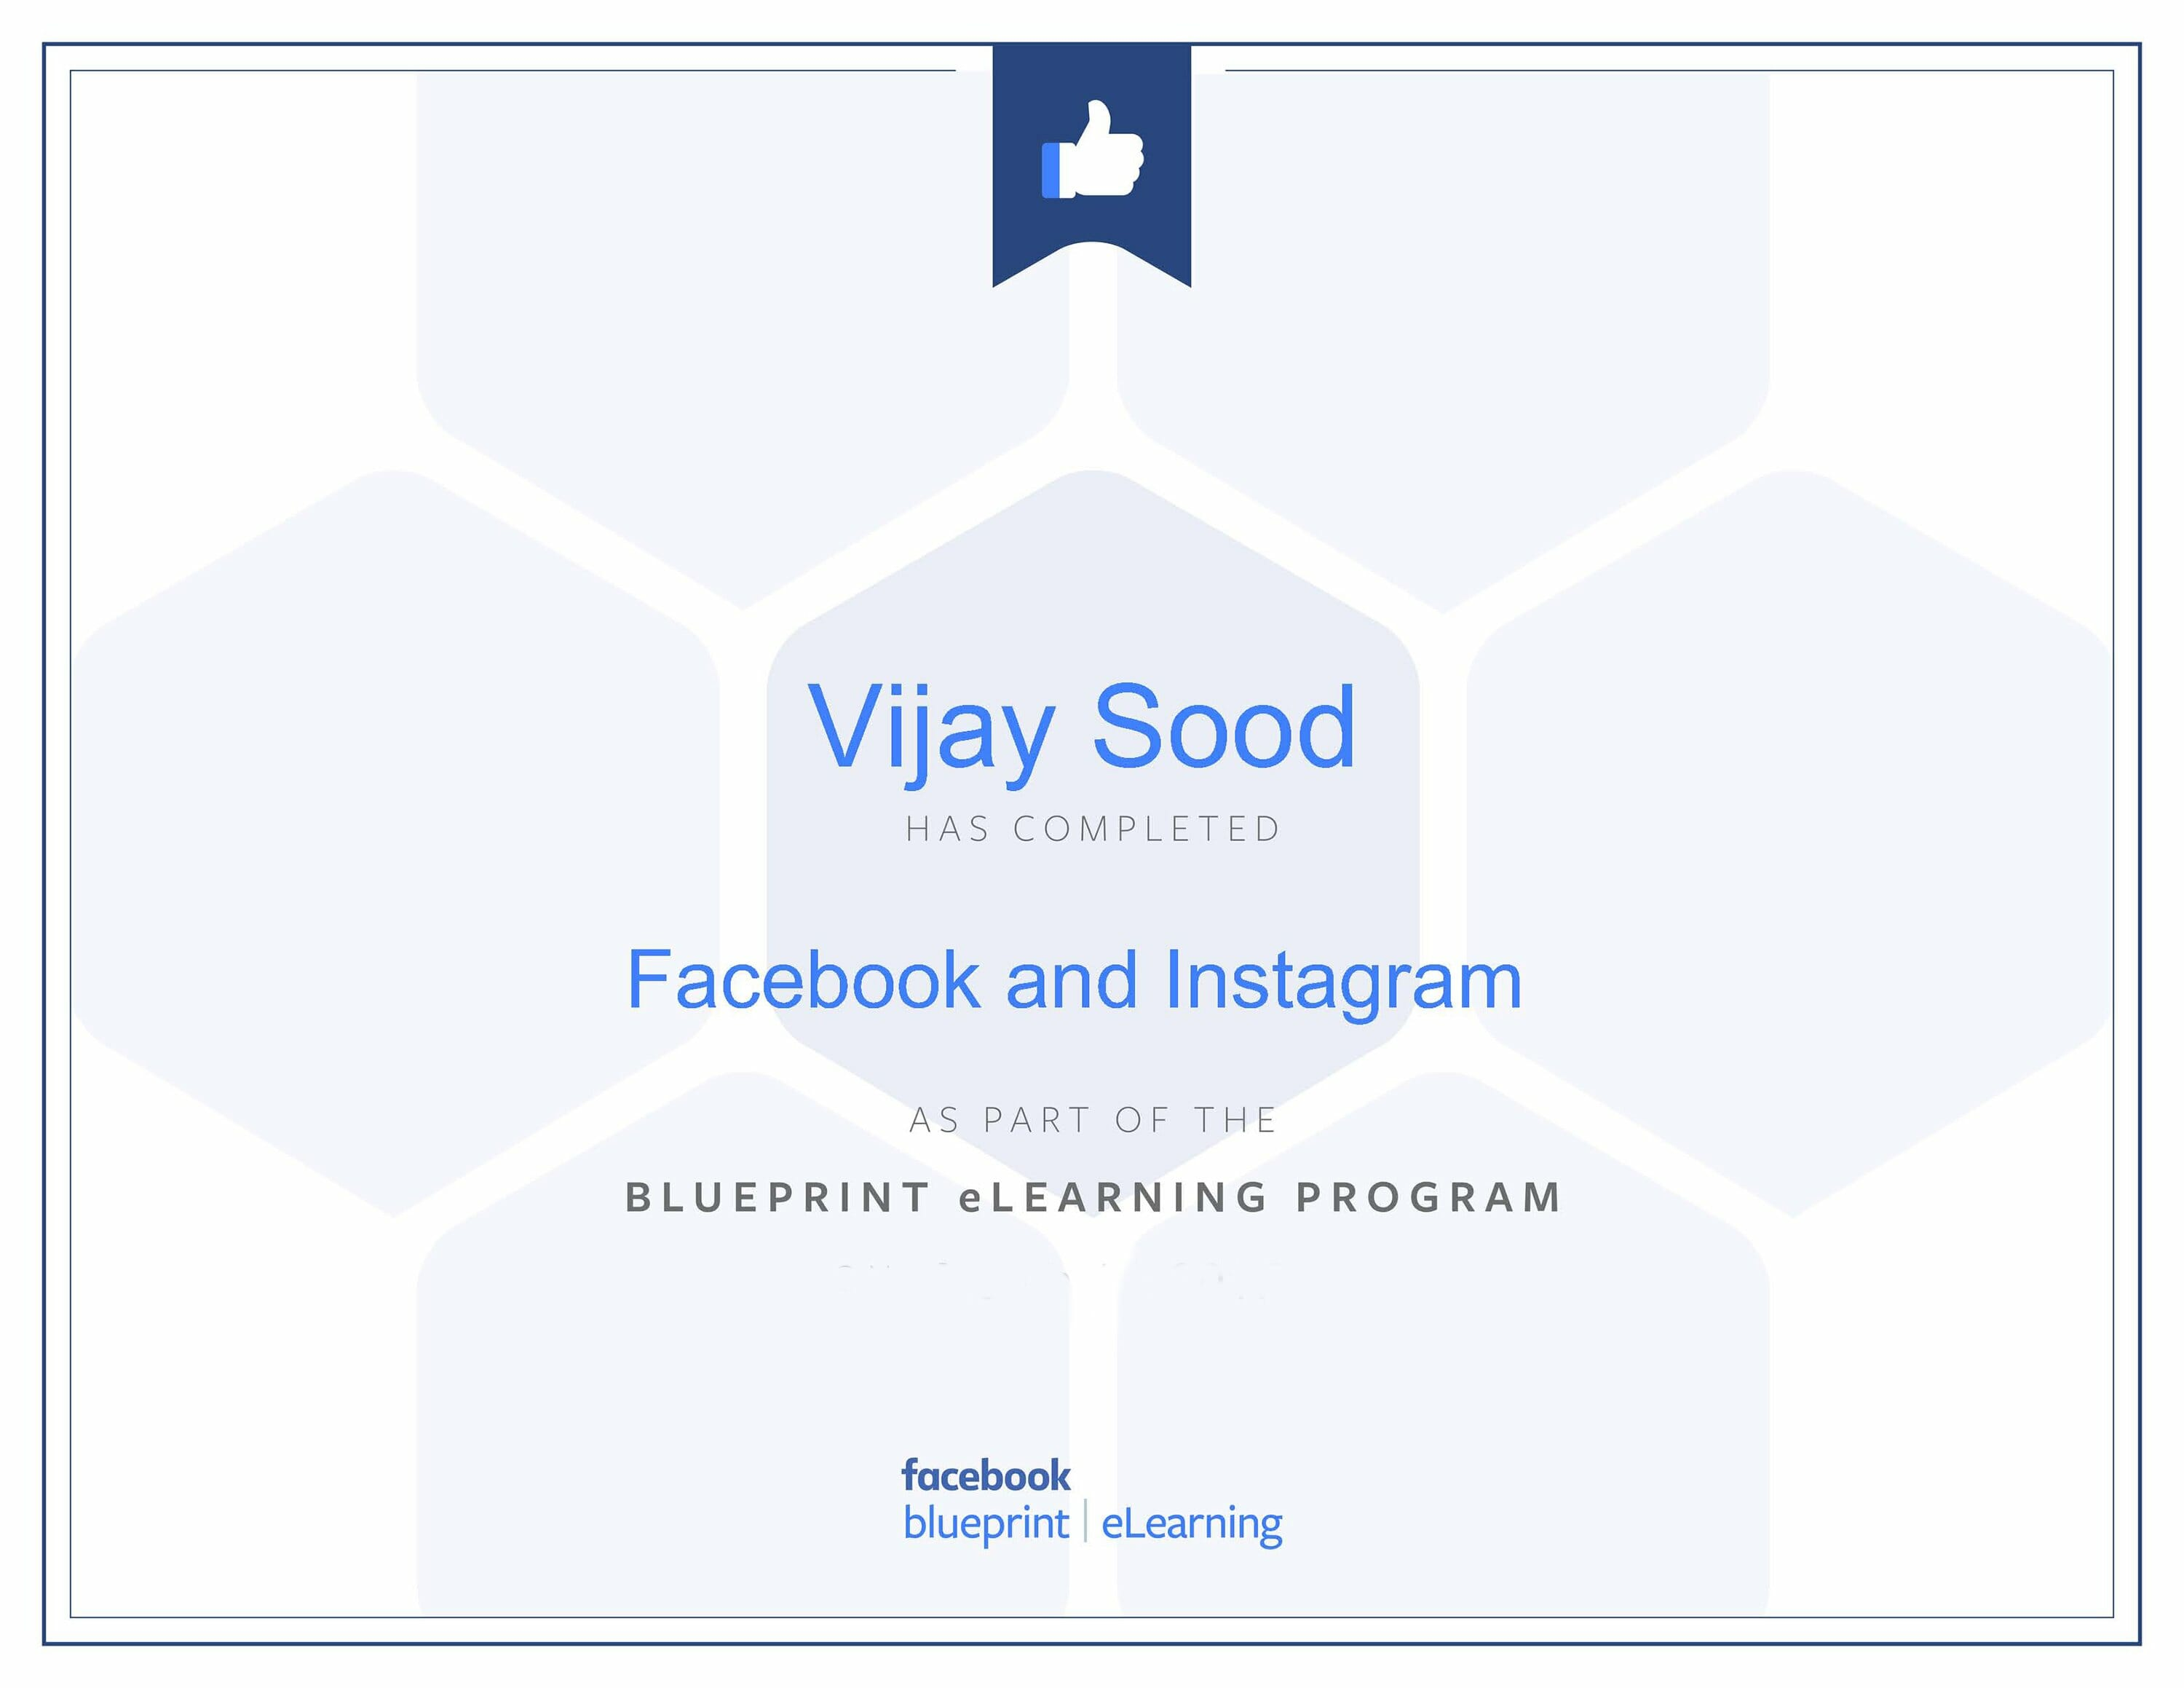 Facebook blueprint Vijay Sood SwiftPropel